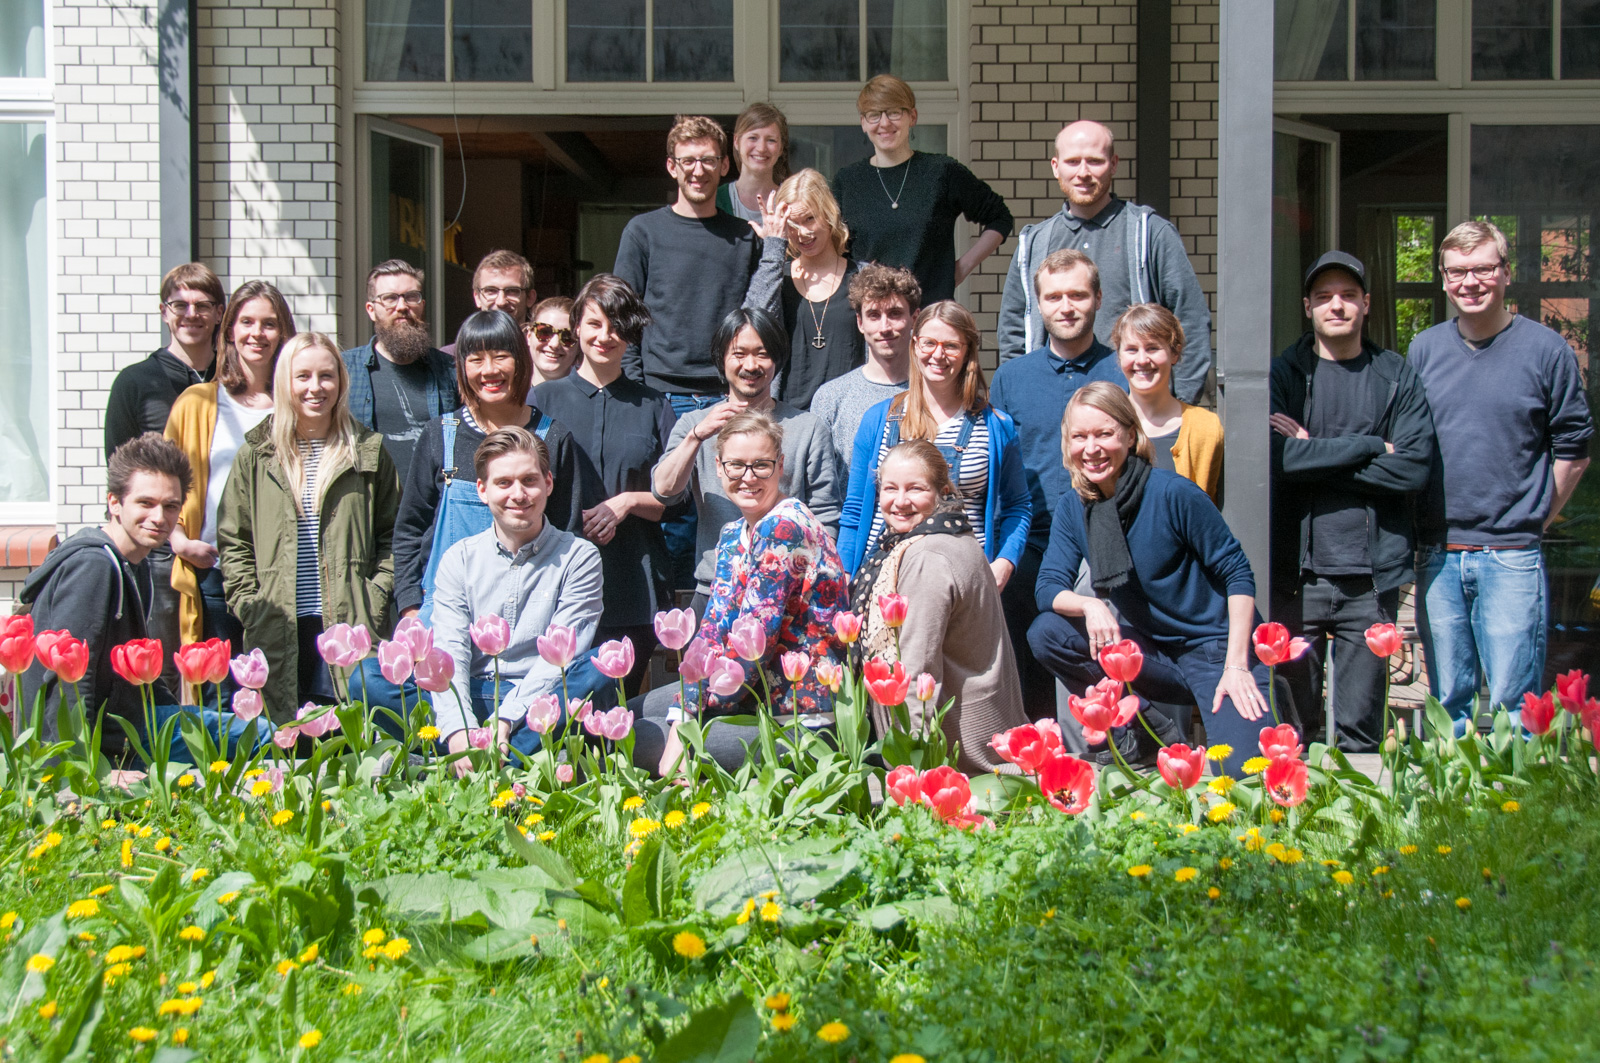 Proudly Presenting: The 2016 TYPO Berlin Editorial Team